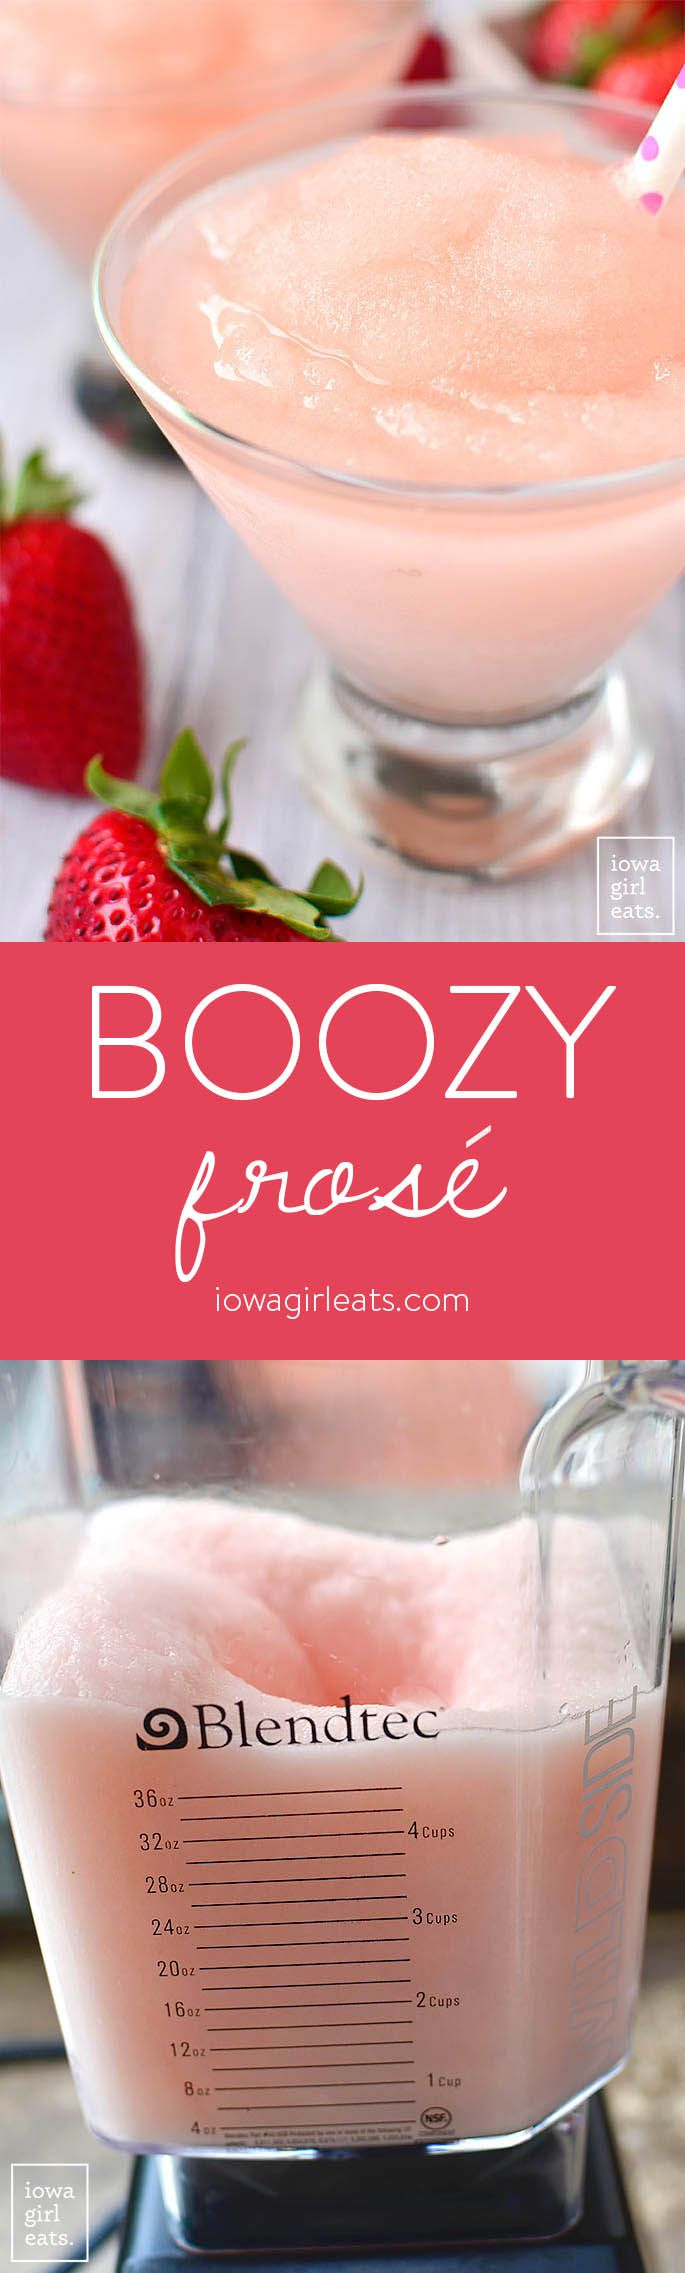 Boozy Frosé is a wine-based summery slushie that's cold and refreshing - and for adults only! This easy cocktail recipe will be a hit at happy hour.| iowagirleats.com